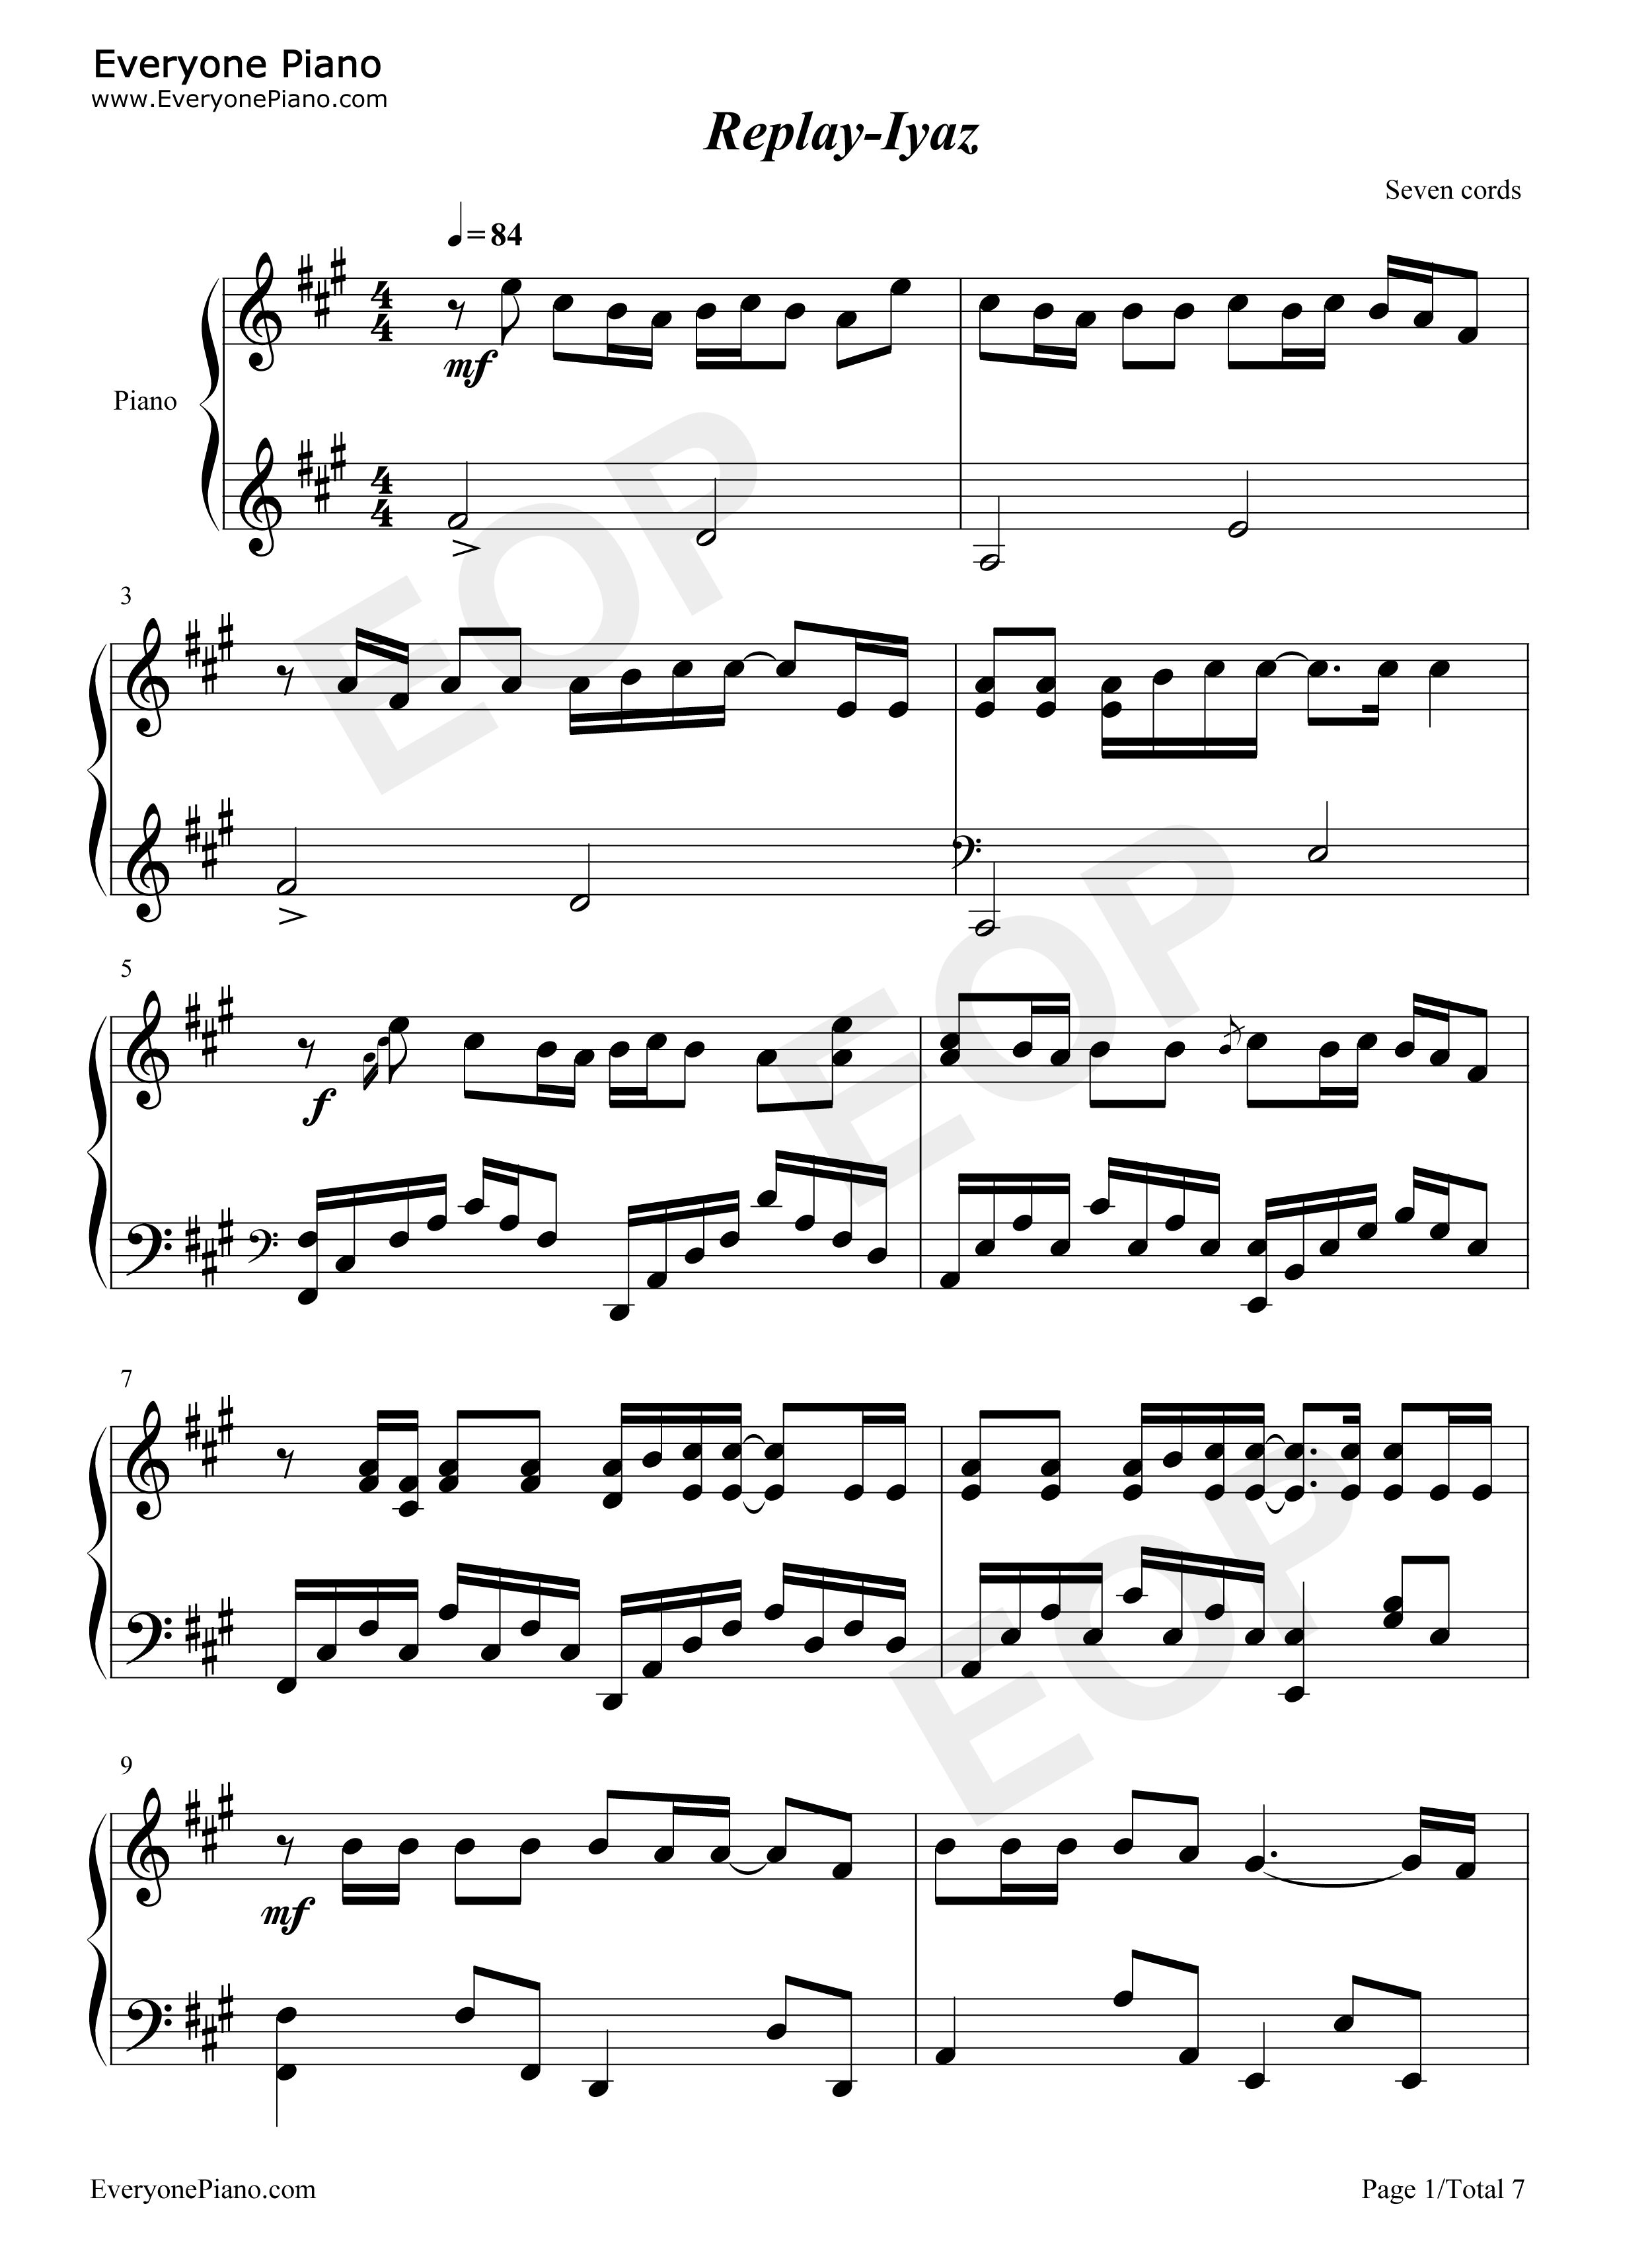 Replay iyaz stave preview 1 free piano sheet music piano chords listen now print sheet replay iyaz stave preview 1 hexwebz Image collections